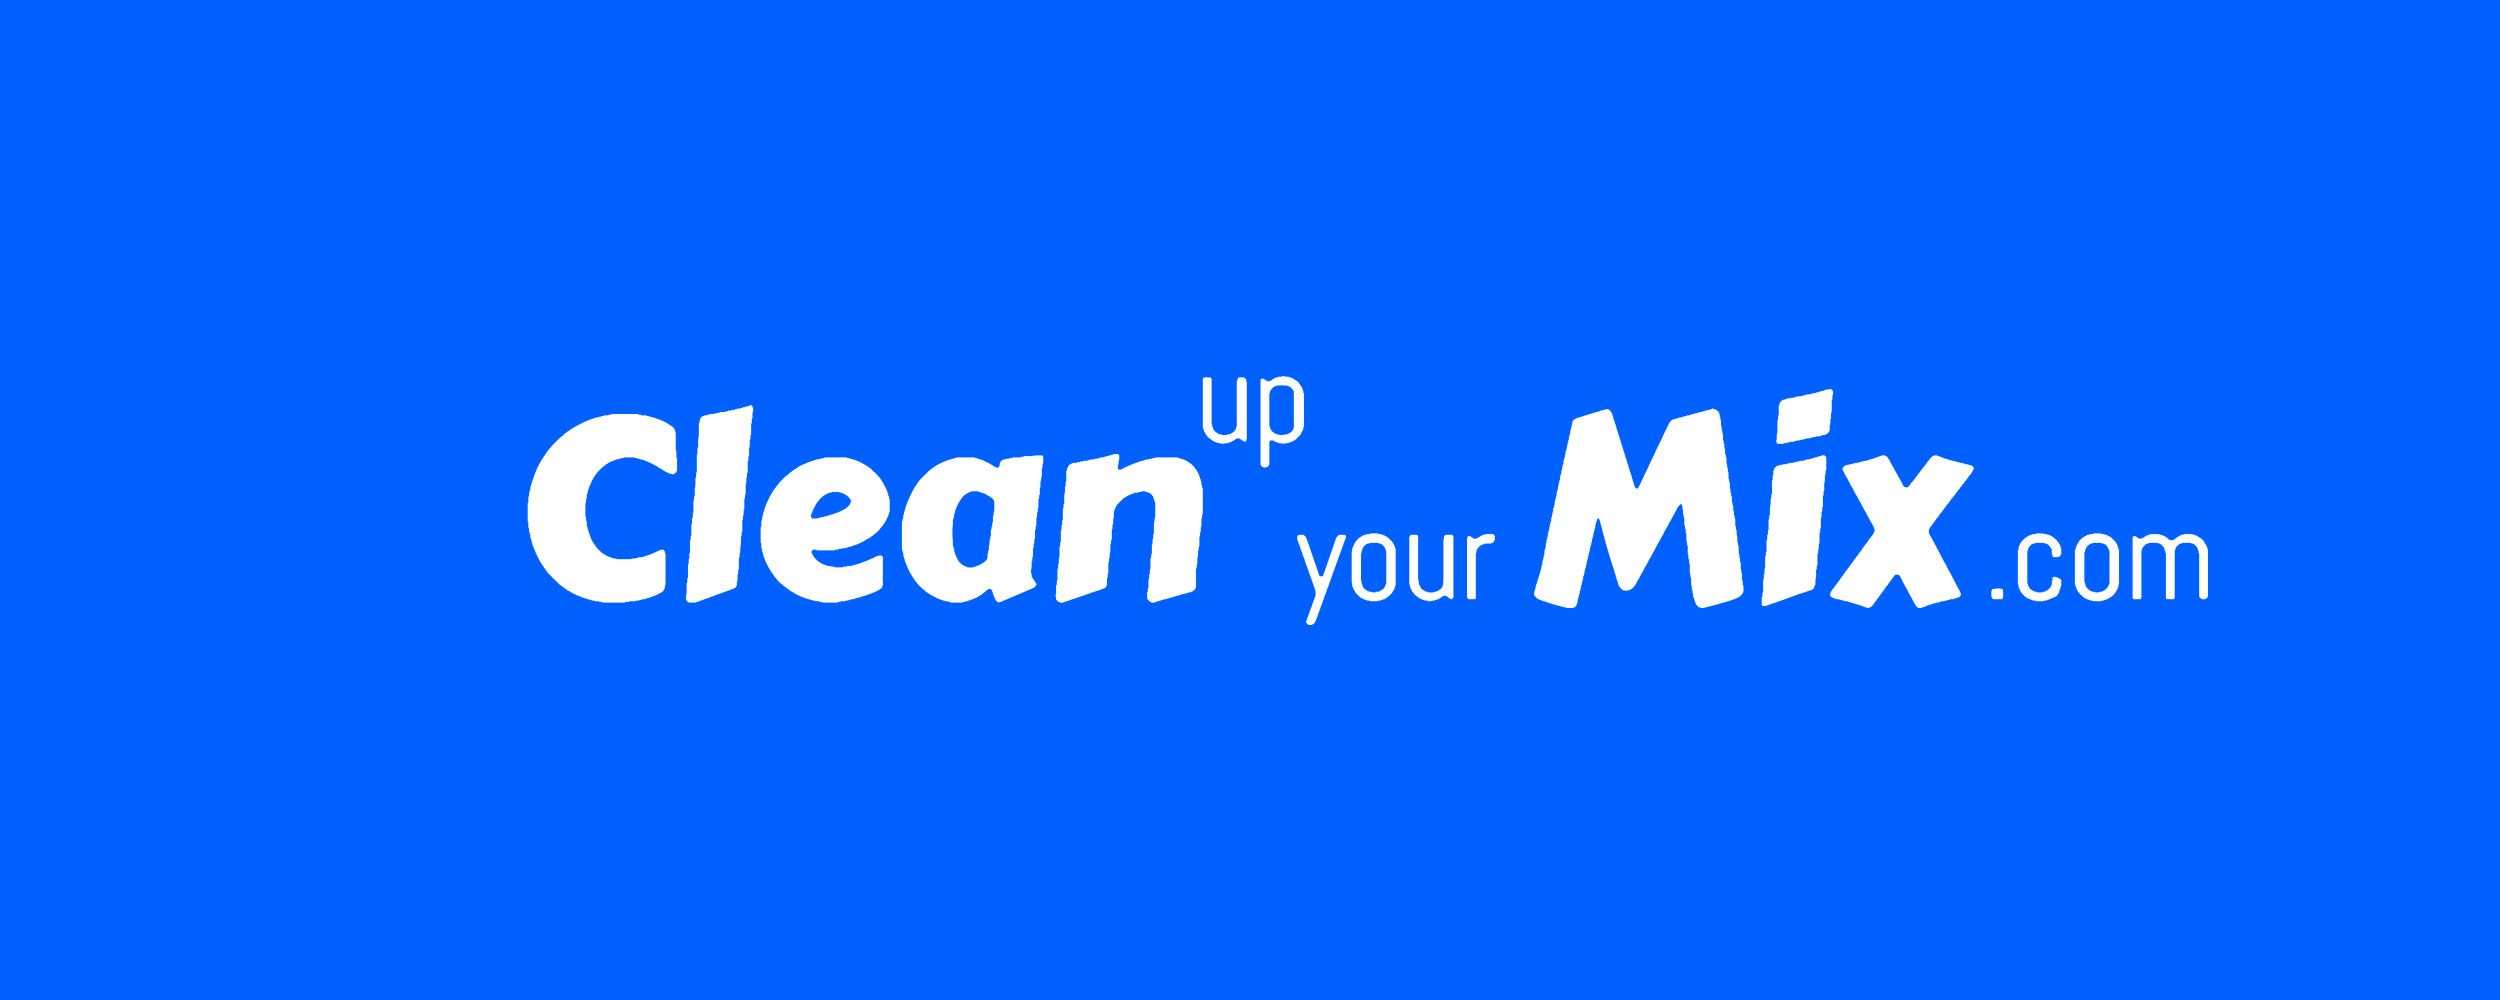 Cleanupyourmix-facebook-header